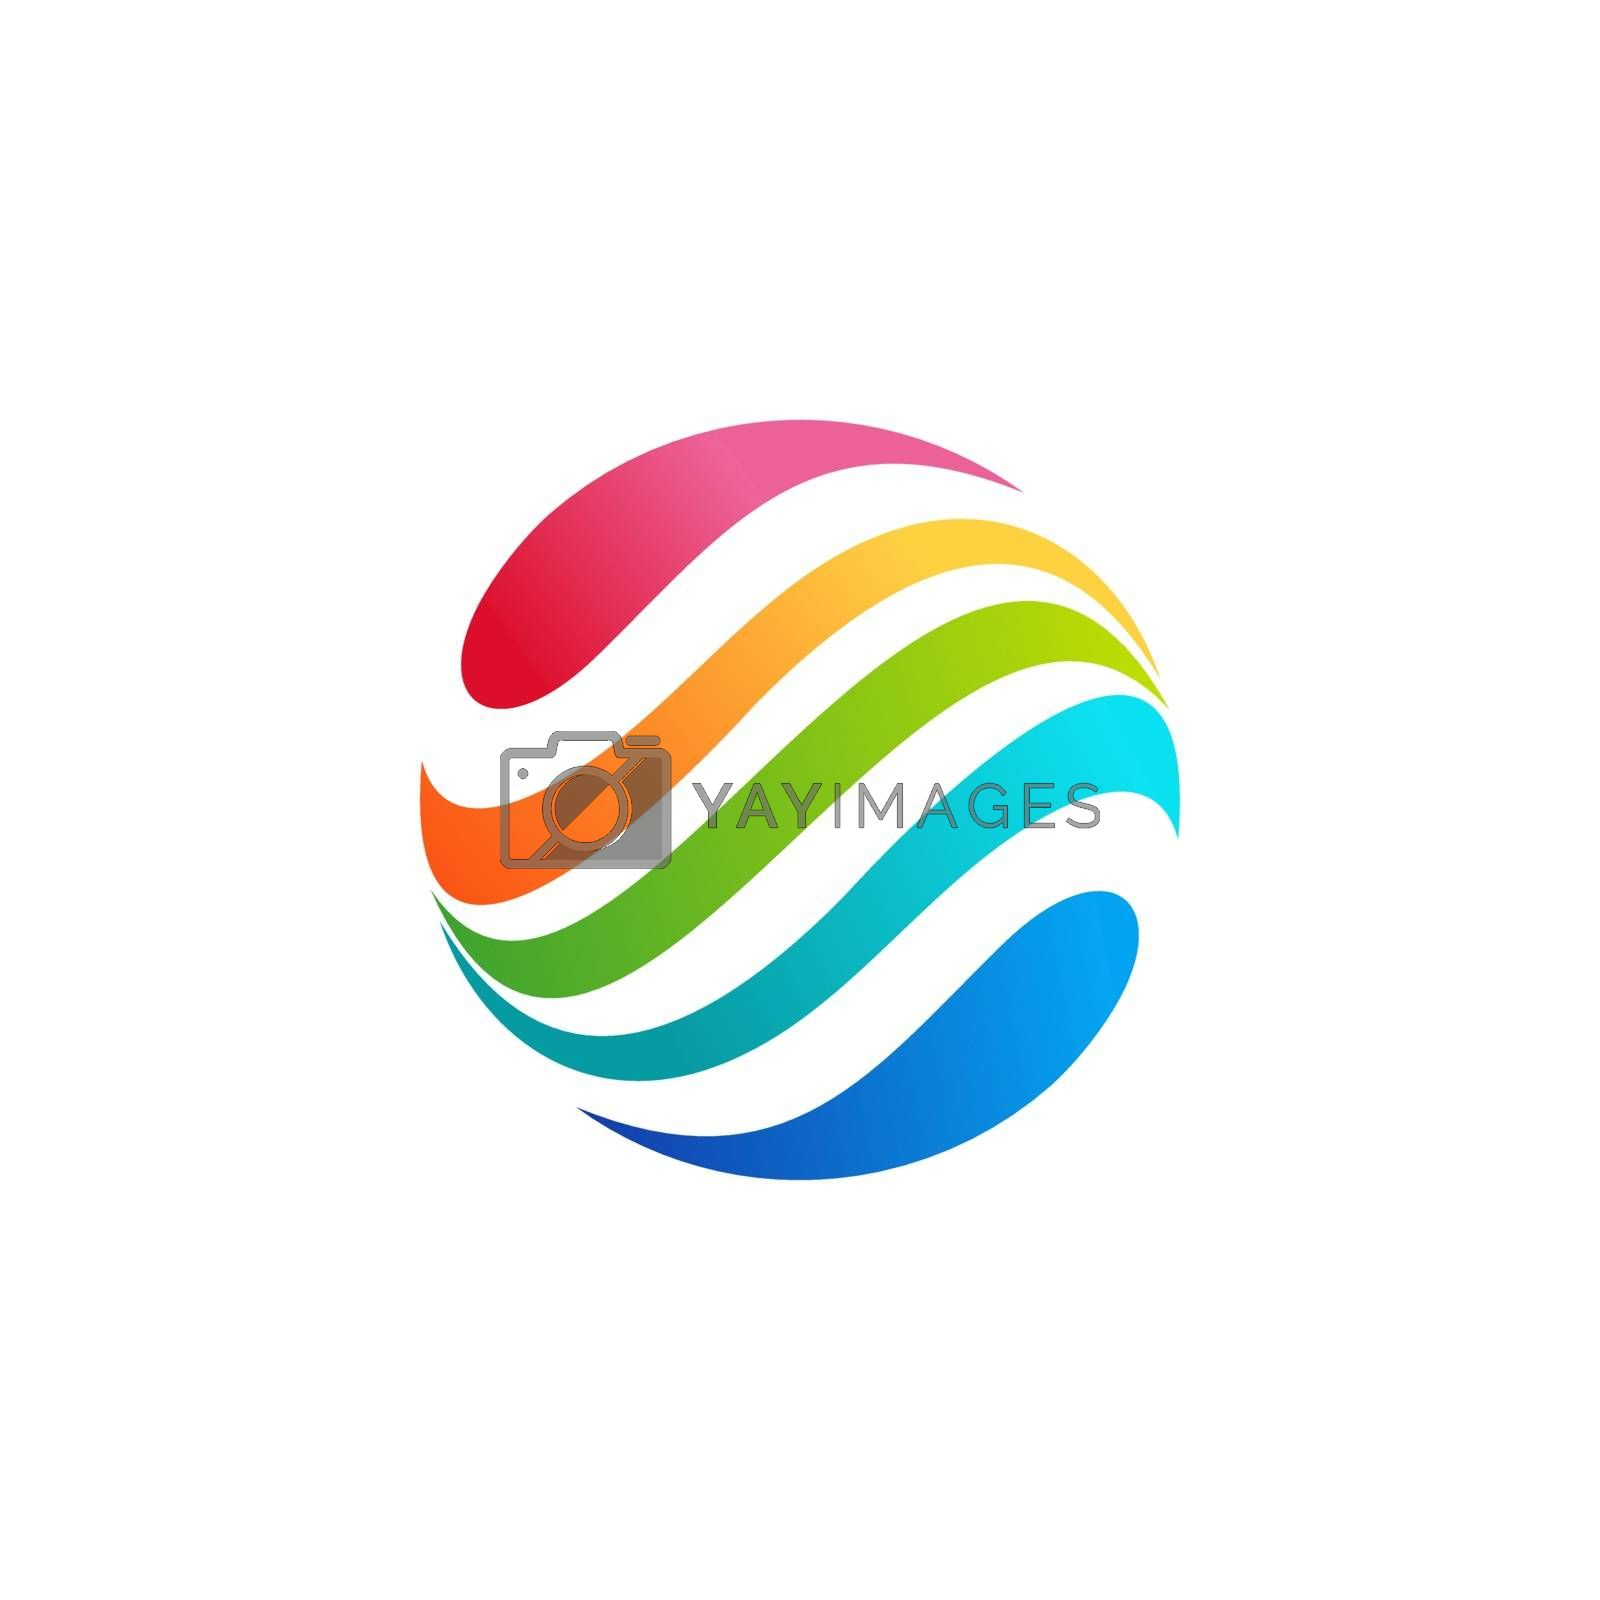 sphere circle droplet logo concept abstract motion wave element symbol icon vector design